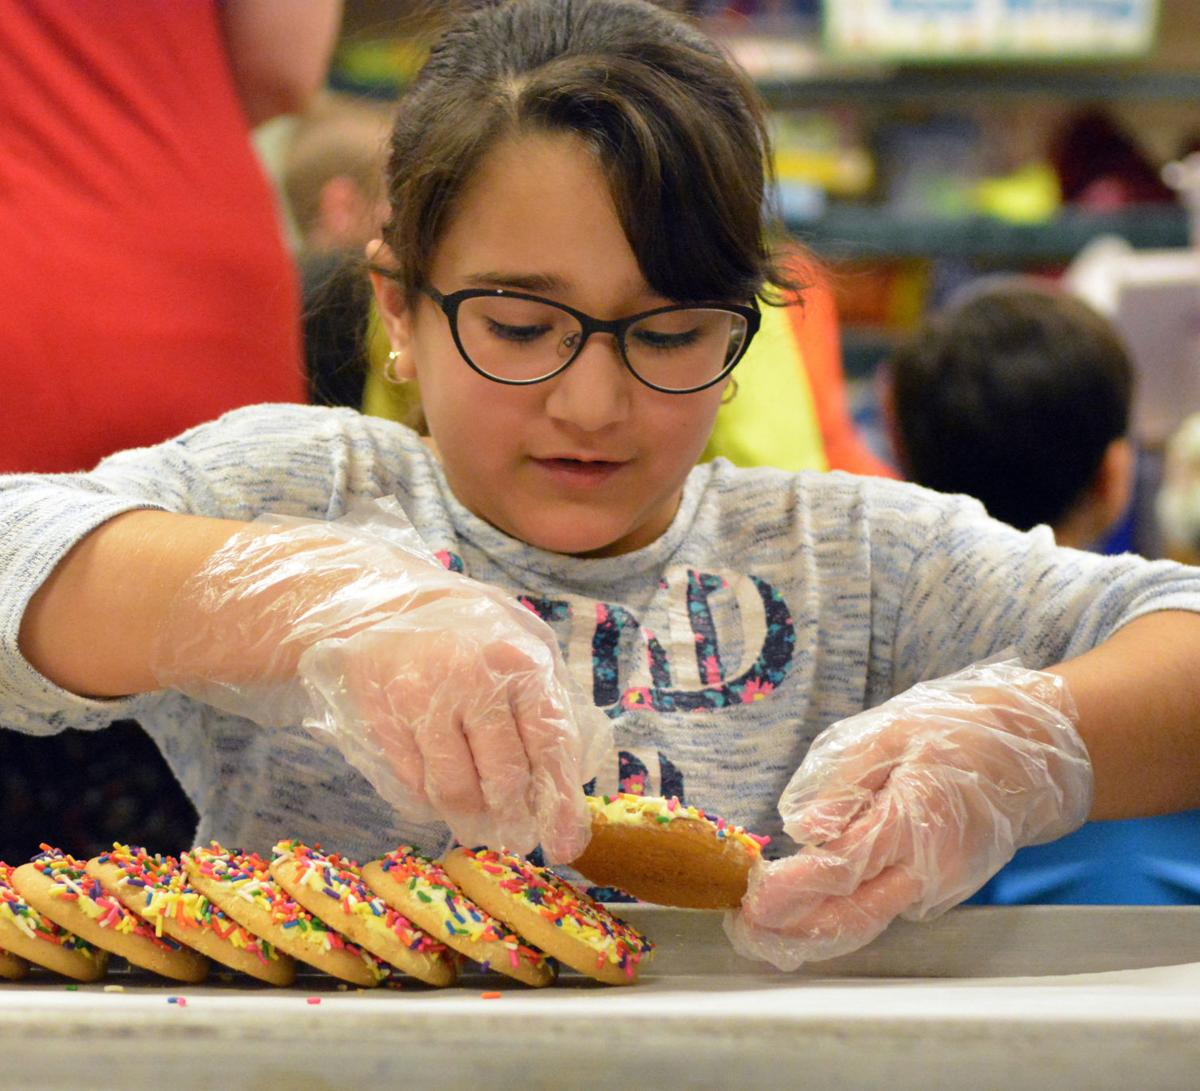 Cookie Sale A Sweet Gesture By Students Local